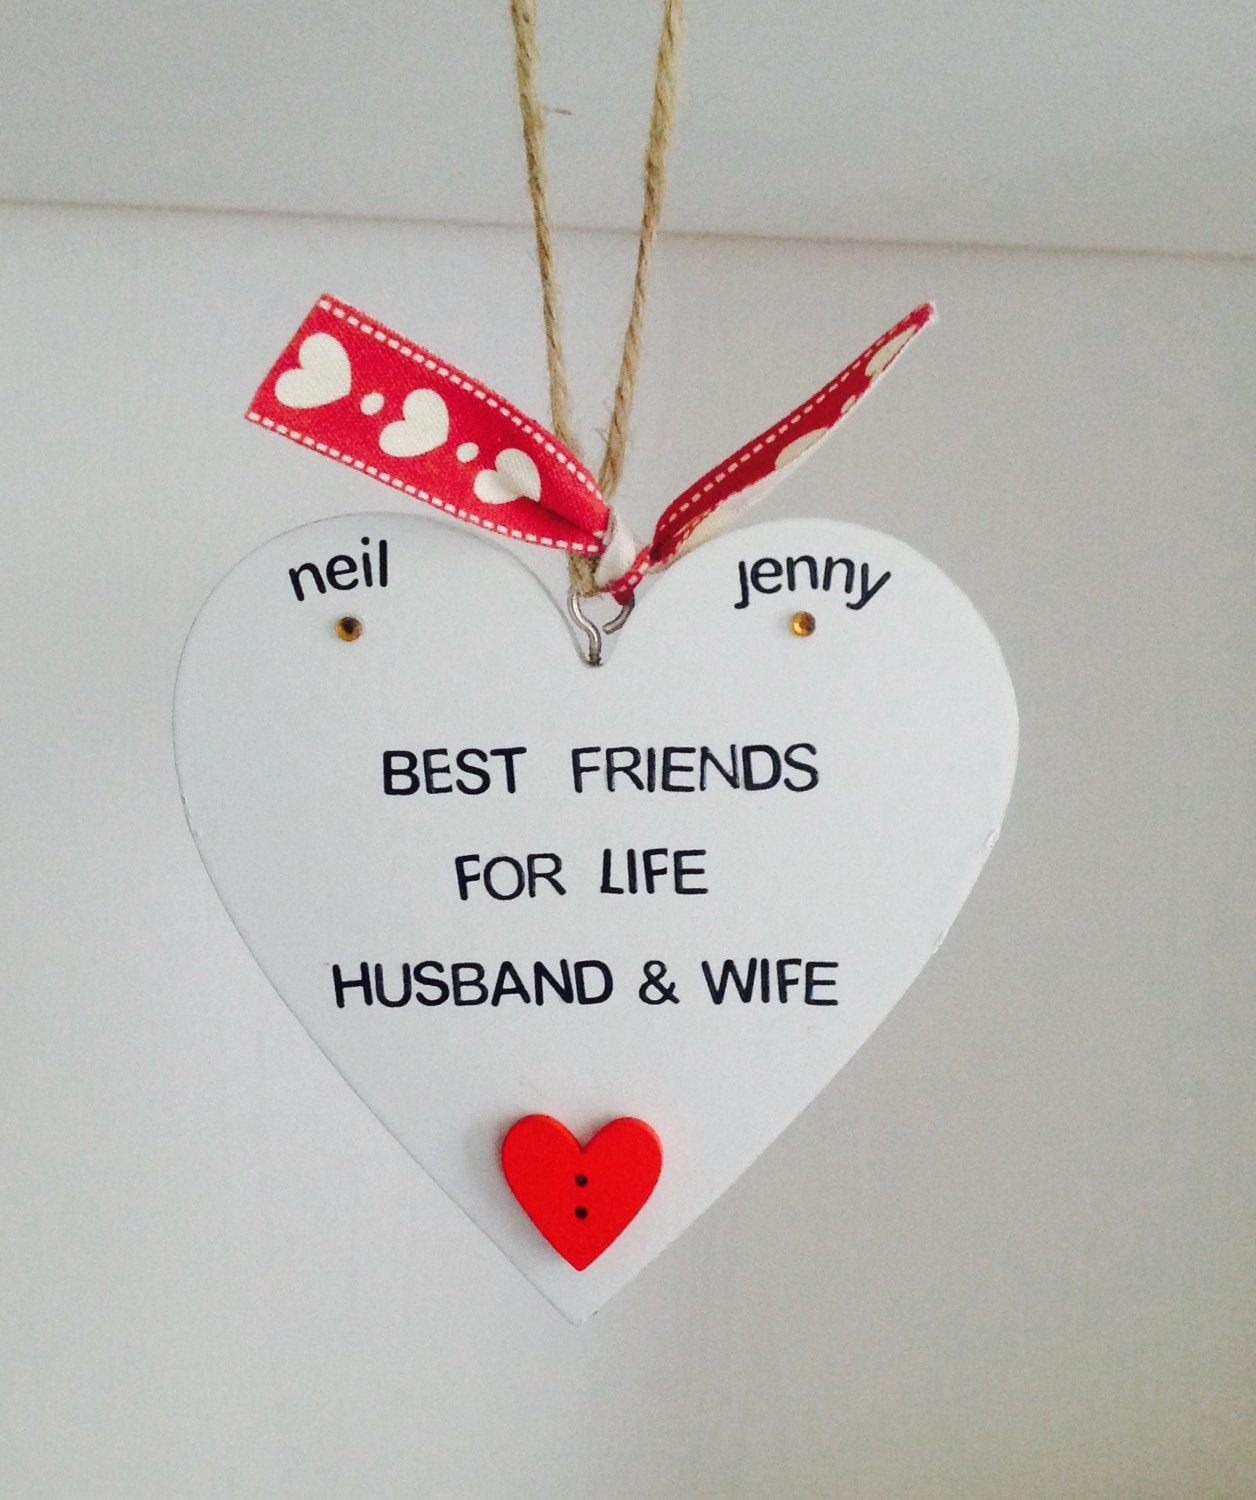 Best Husband And Wife: Best Friends For Life Husband & Wife By Happyheartsdesignsuk